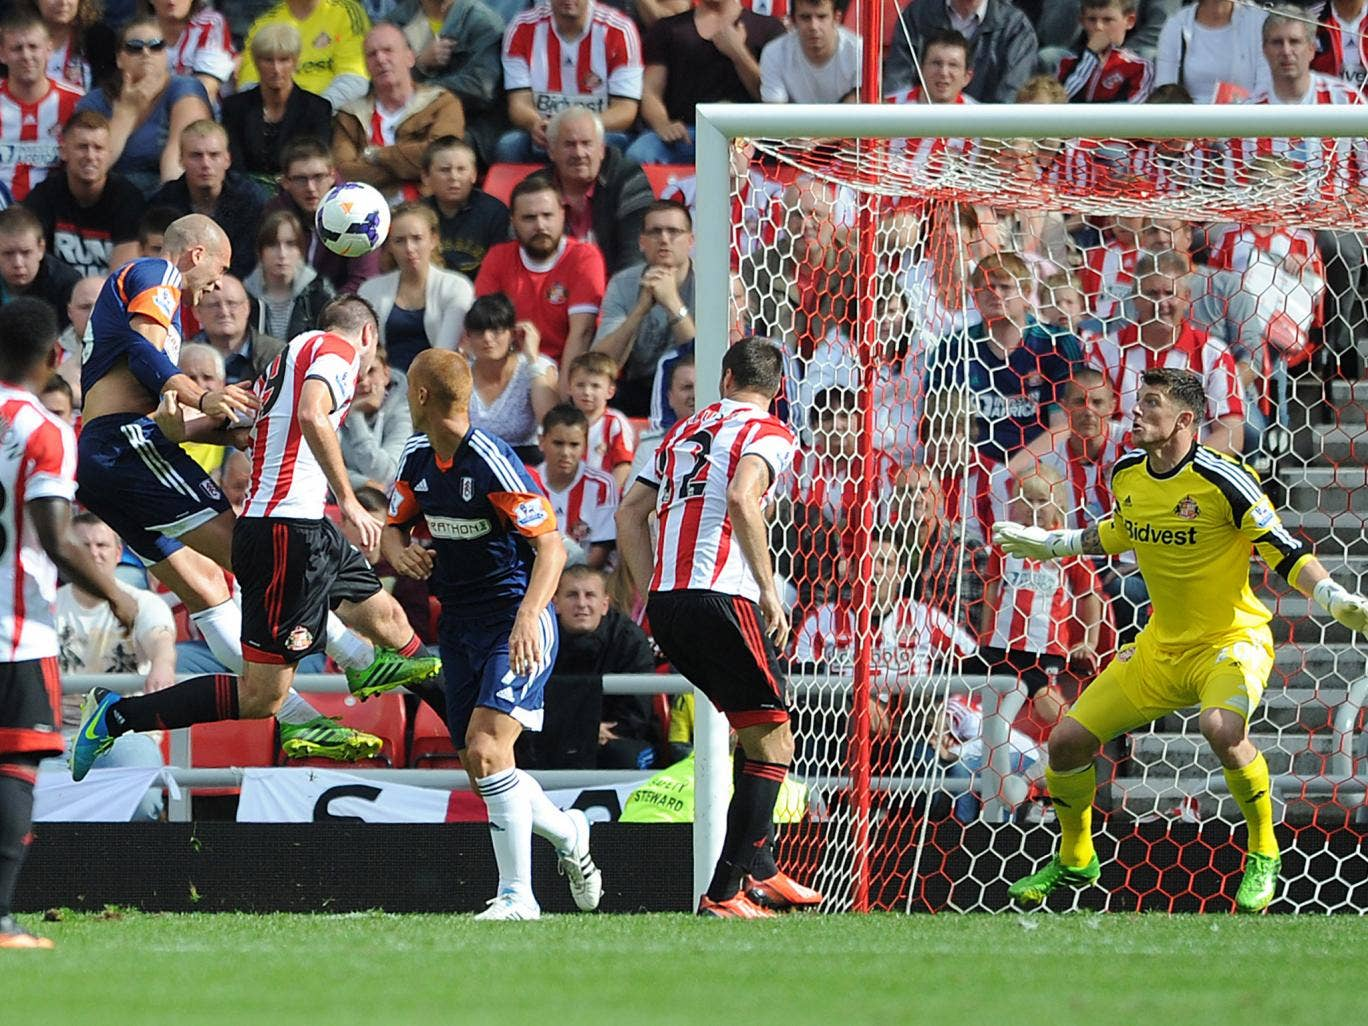 Patjim Kasami scores a header to give Fulham victory over Sunderland